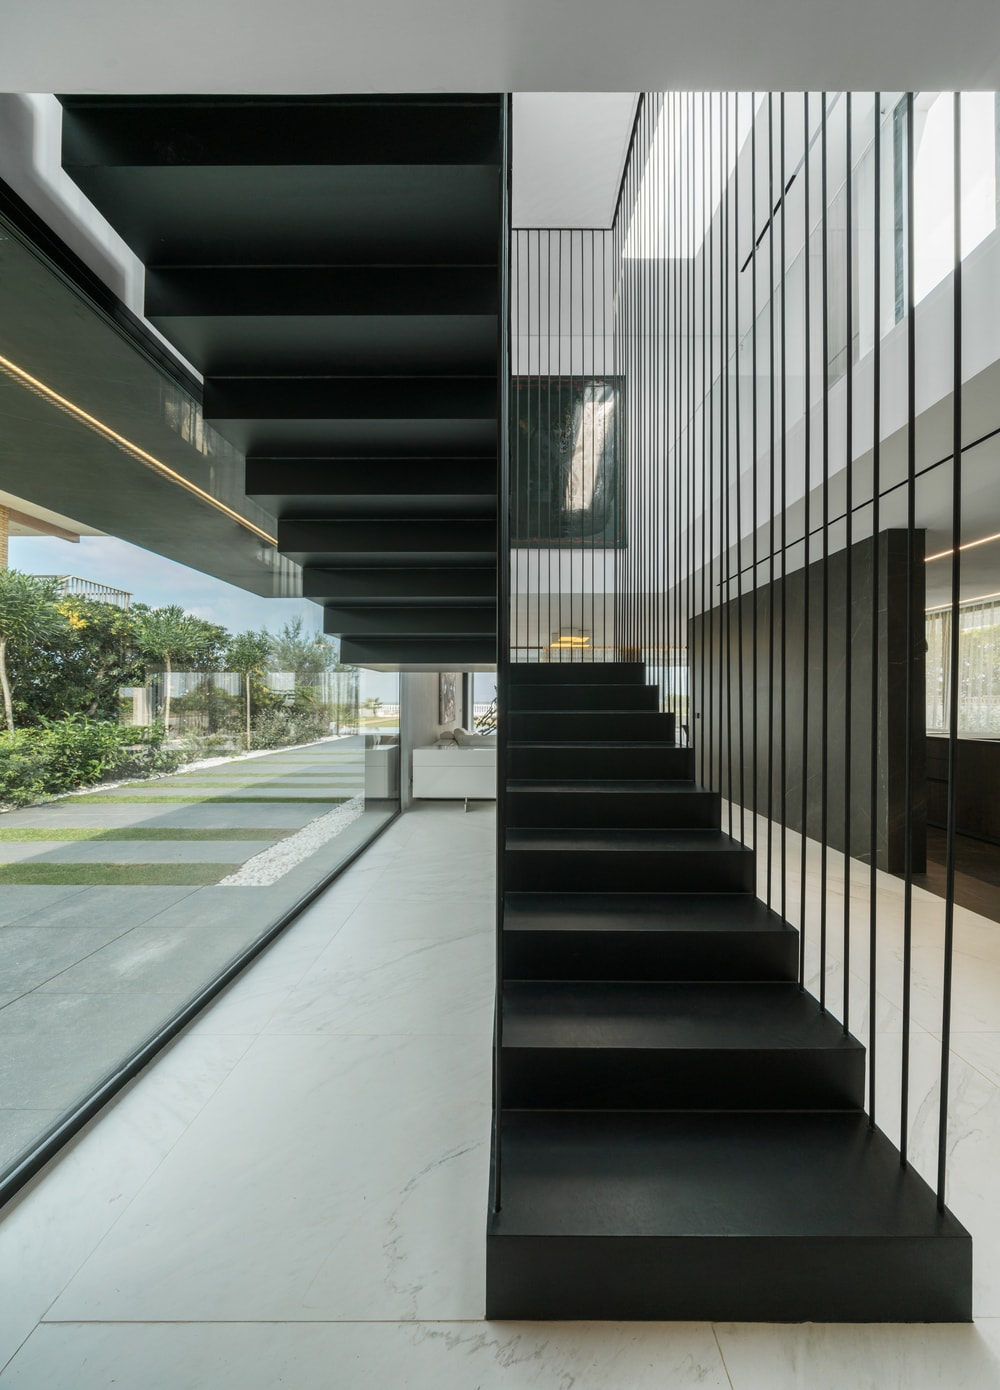 This is a close inspection of the modern staircase with a black tone to stand out against the bright elements of the area.